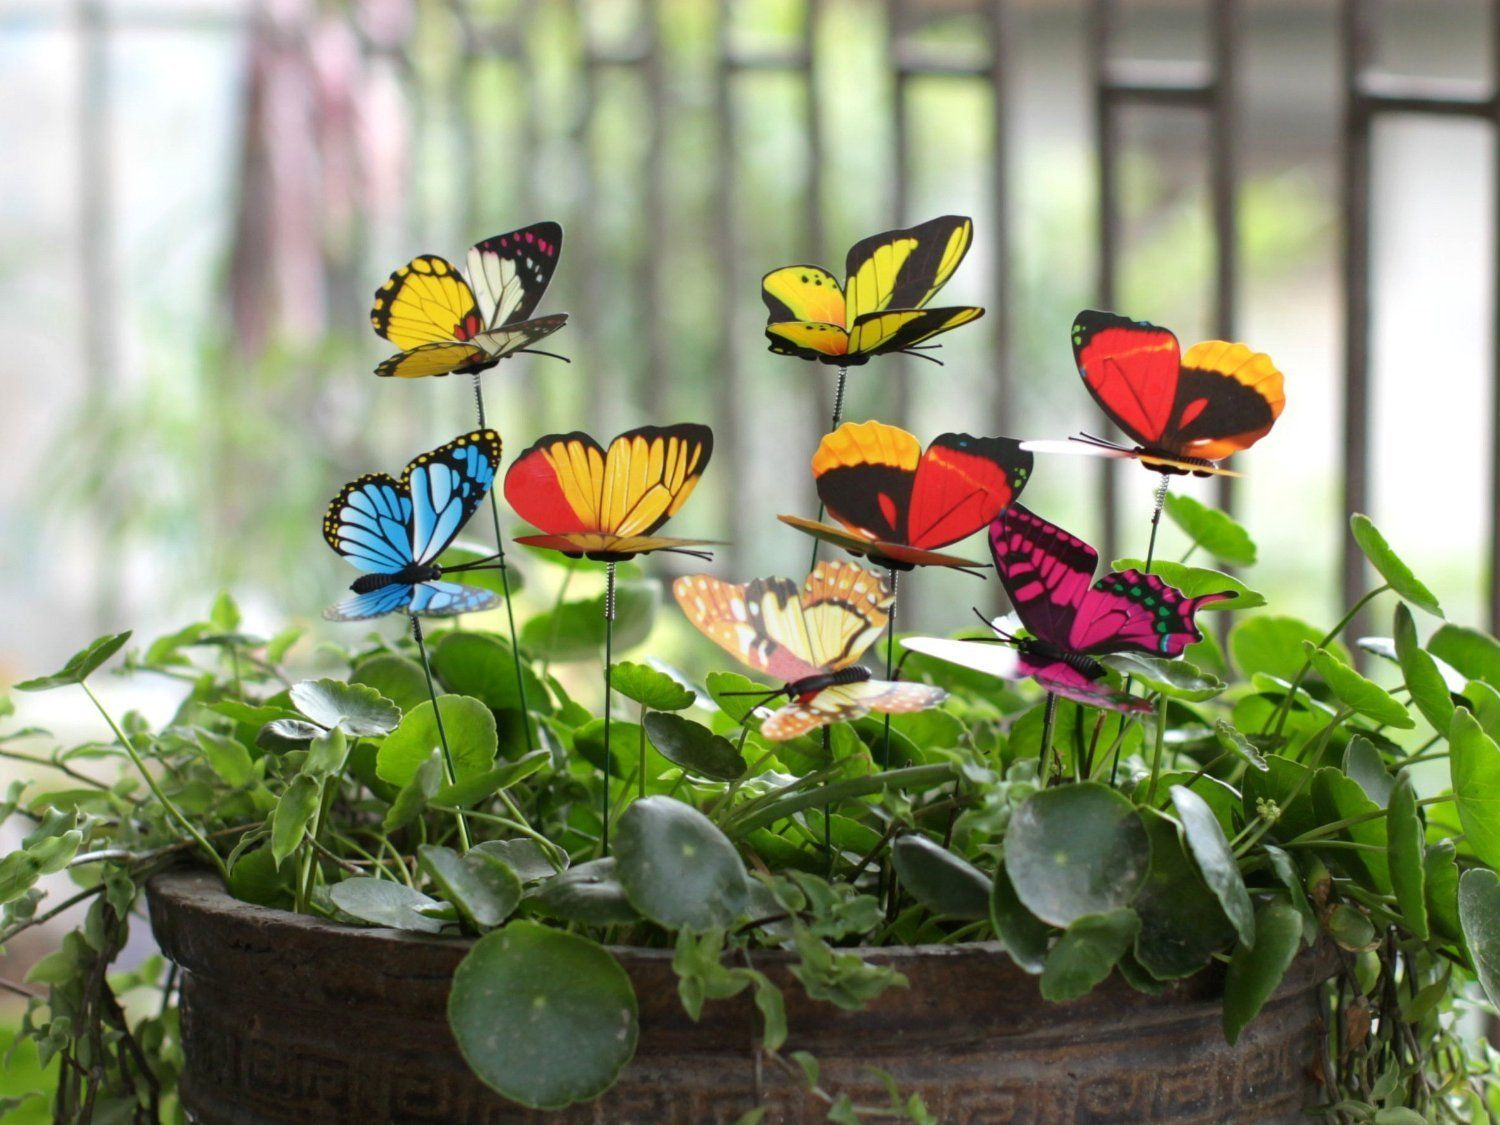 Beetrie 25pcs Butterfly Stakes Outdoor Yard Garden Decor Butterflies ...